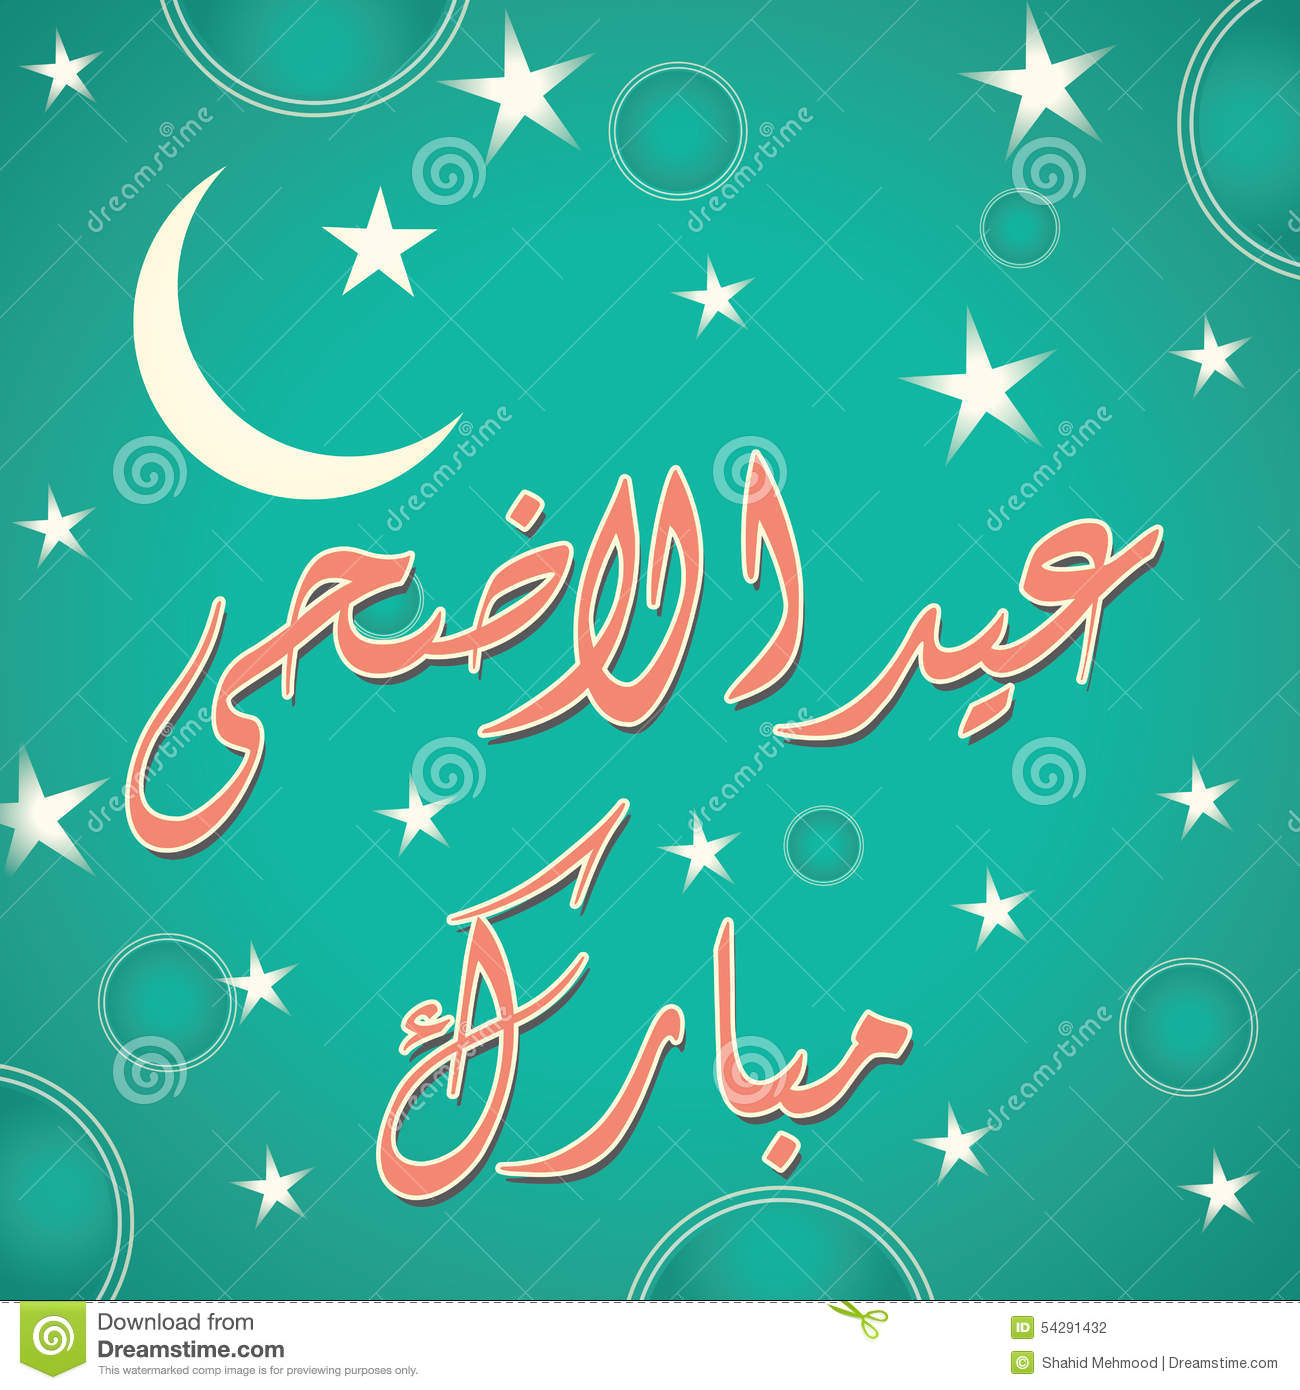 Eid greetings urdu stock illustration illustration of allah urdu arabic islamic calligraphy of text eid ul adha mubarak stock photography m4hsunfo Image collections